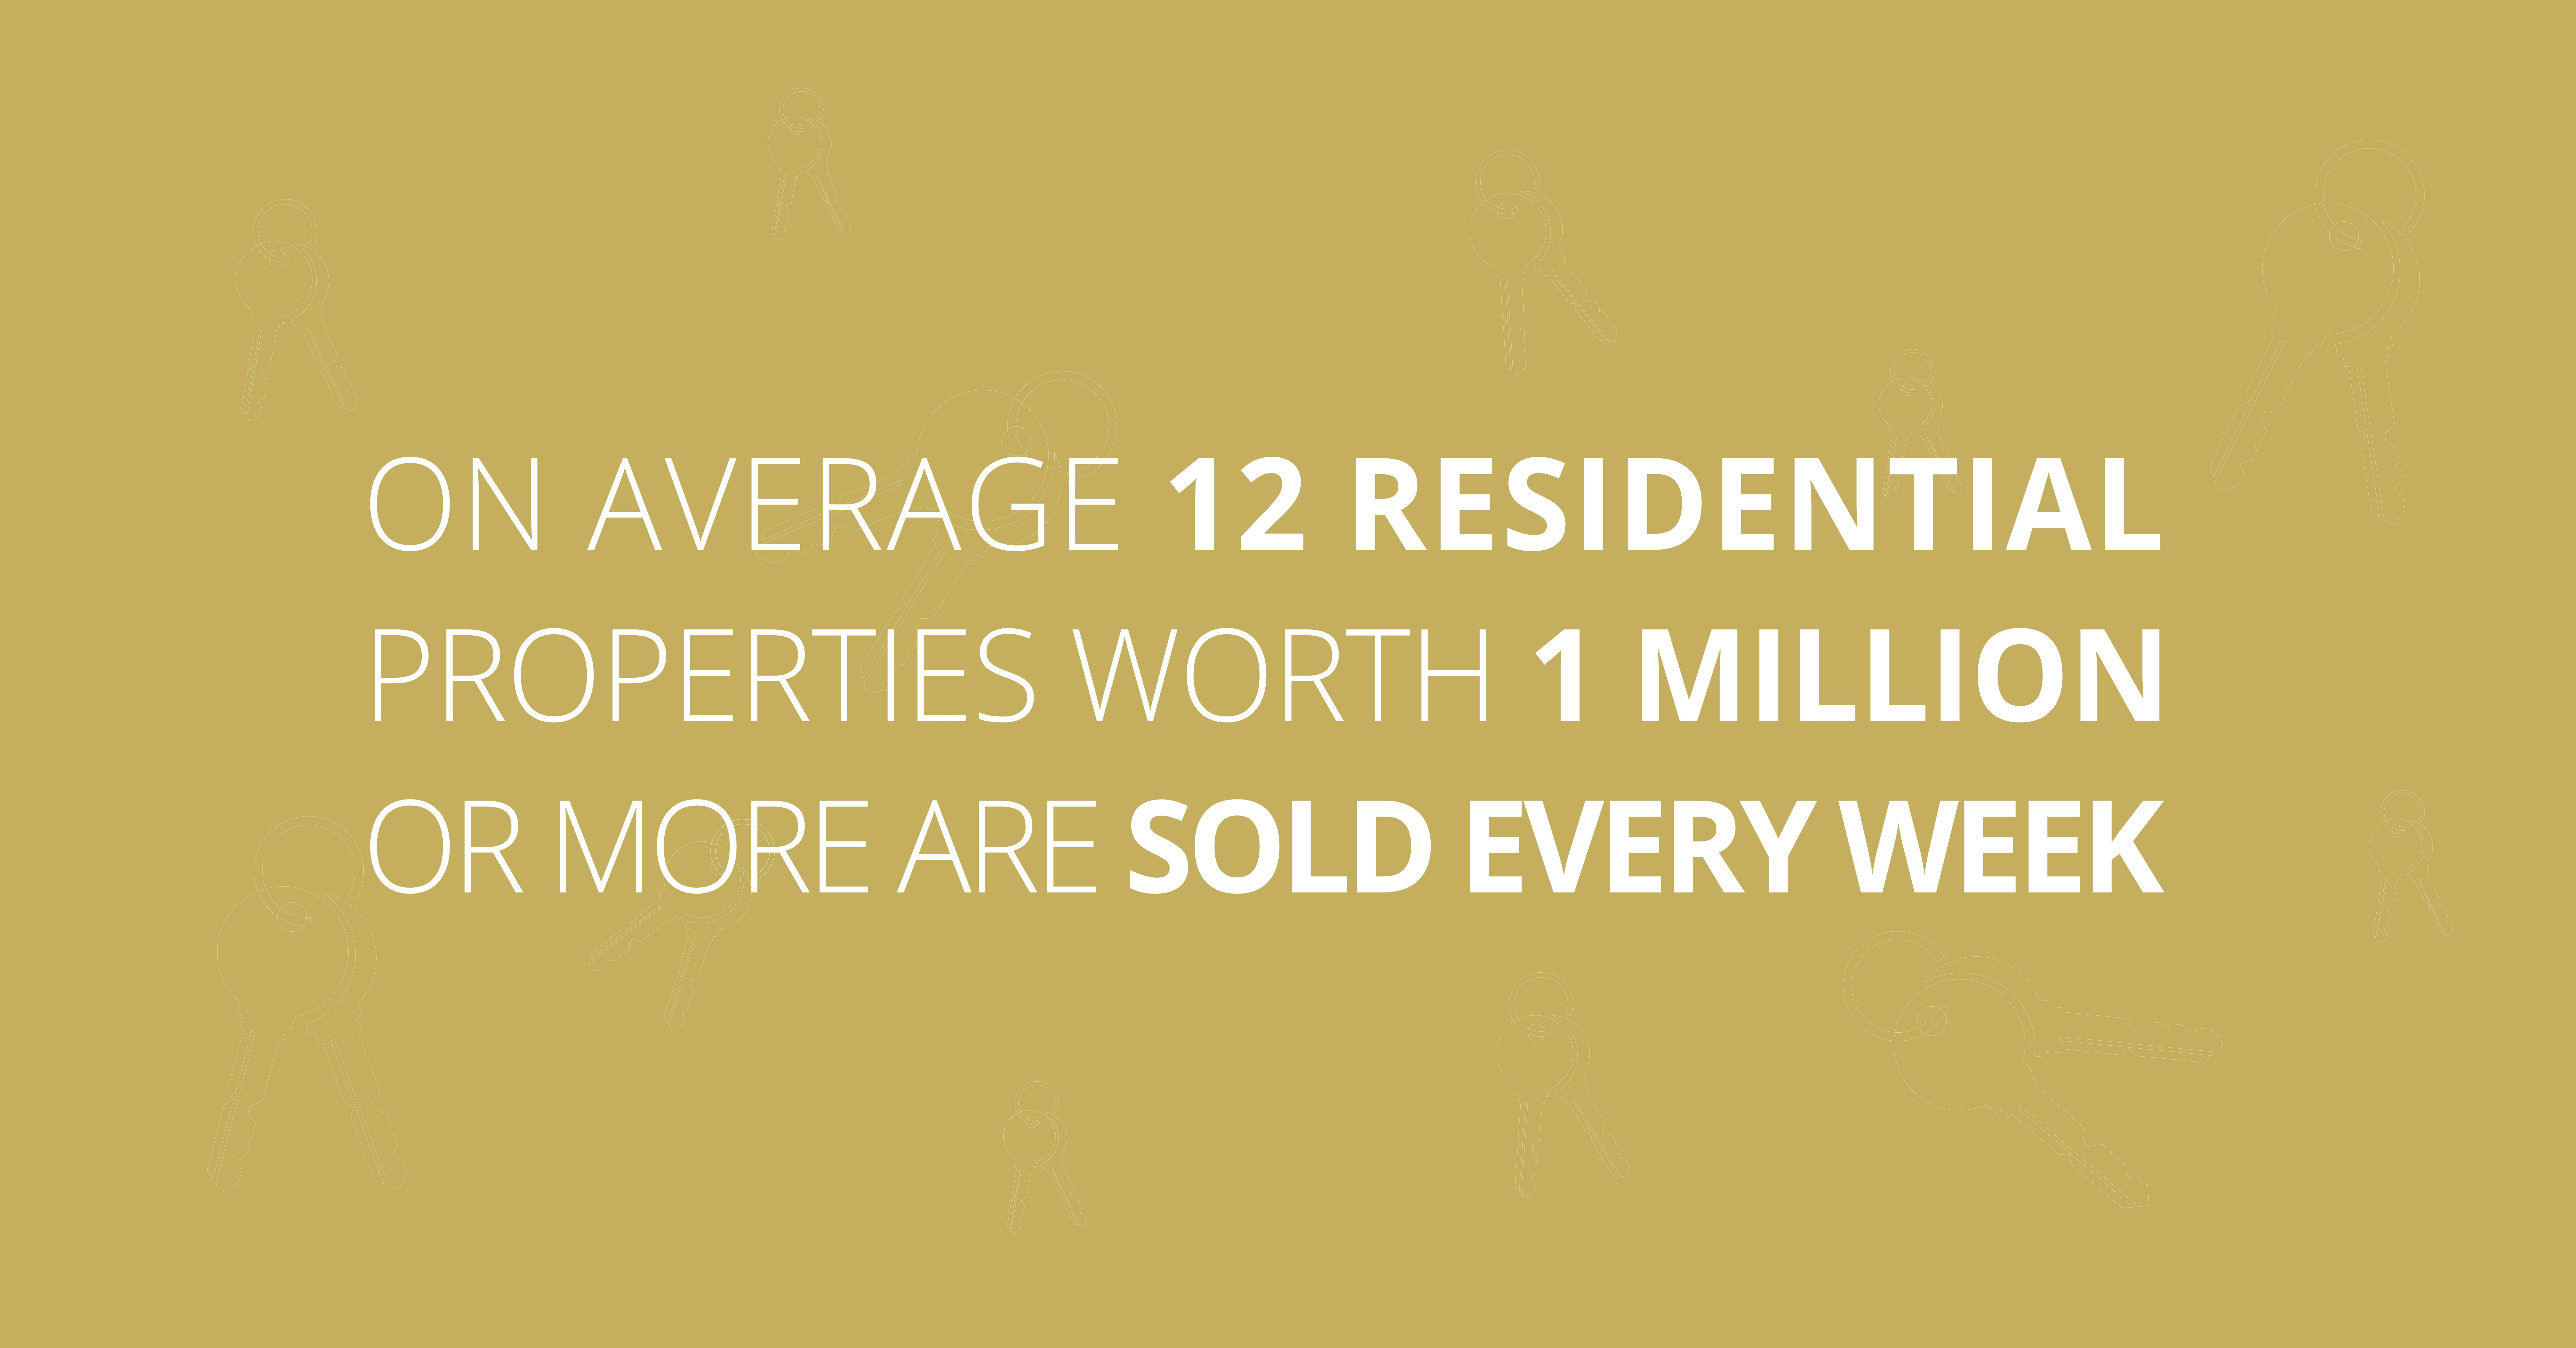 On average 12 residential properties worth 1 million or more are sold every week